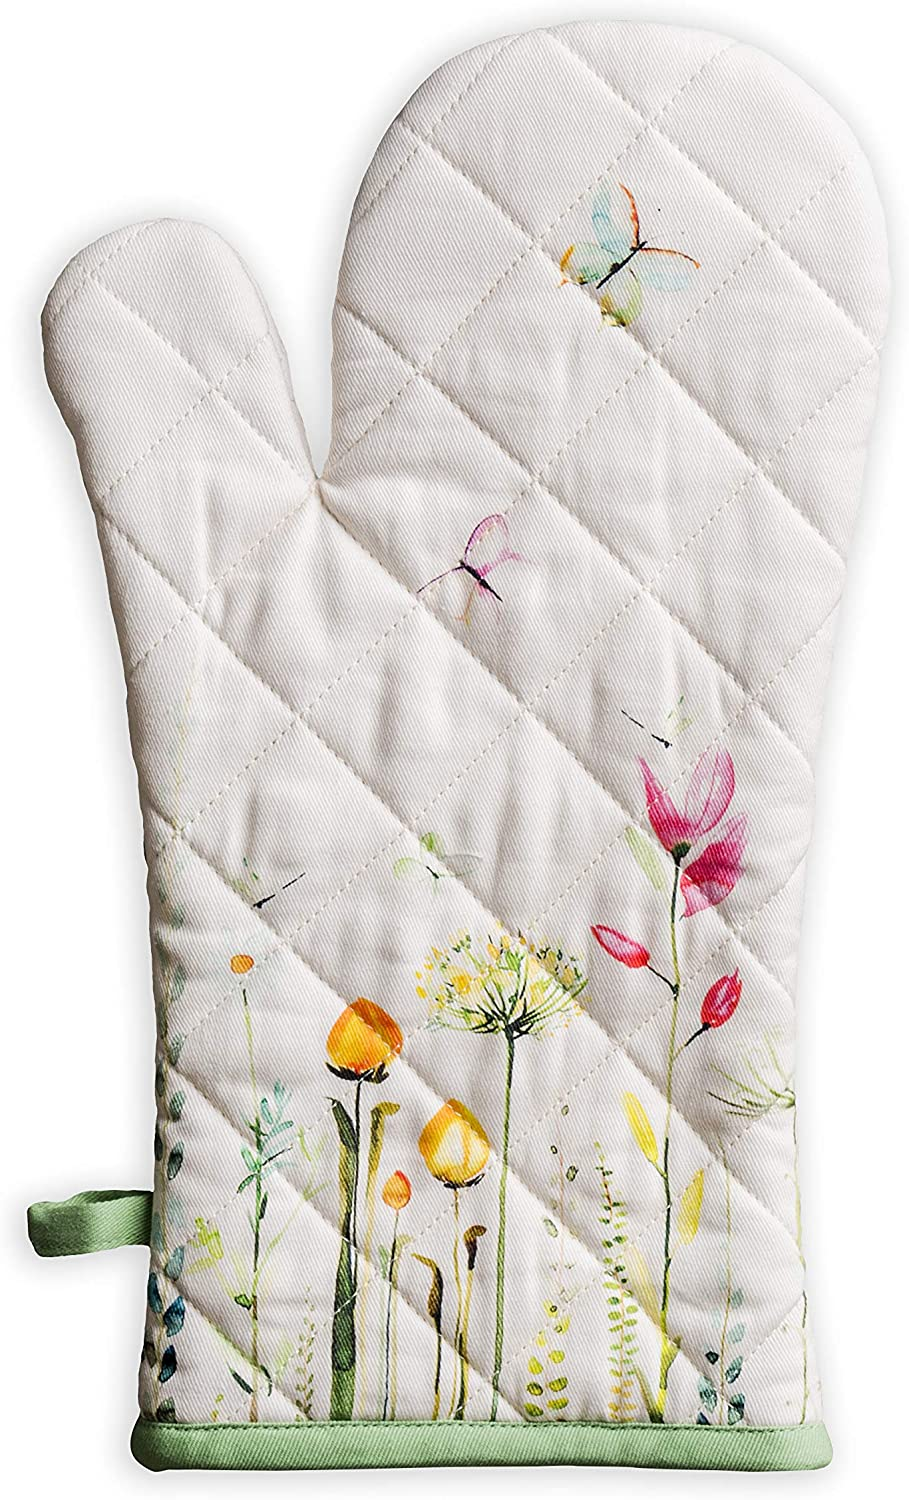 Maison d' Hermine Botanical Fresh 100% Cotton Cooking Gloves | Oven Mitt Heat Resistant for BBQ | Cooking | Baking | Grilling | Microwave | Barbecue | Spring/Summer (7.5 Inch by 13 Inch)